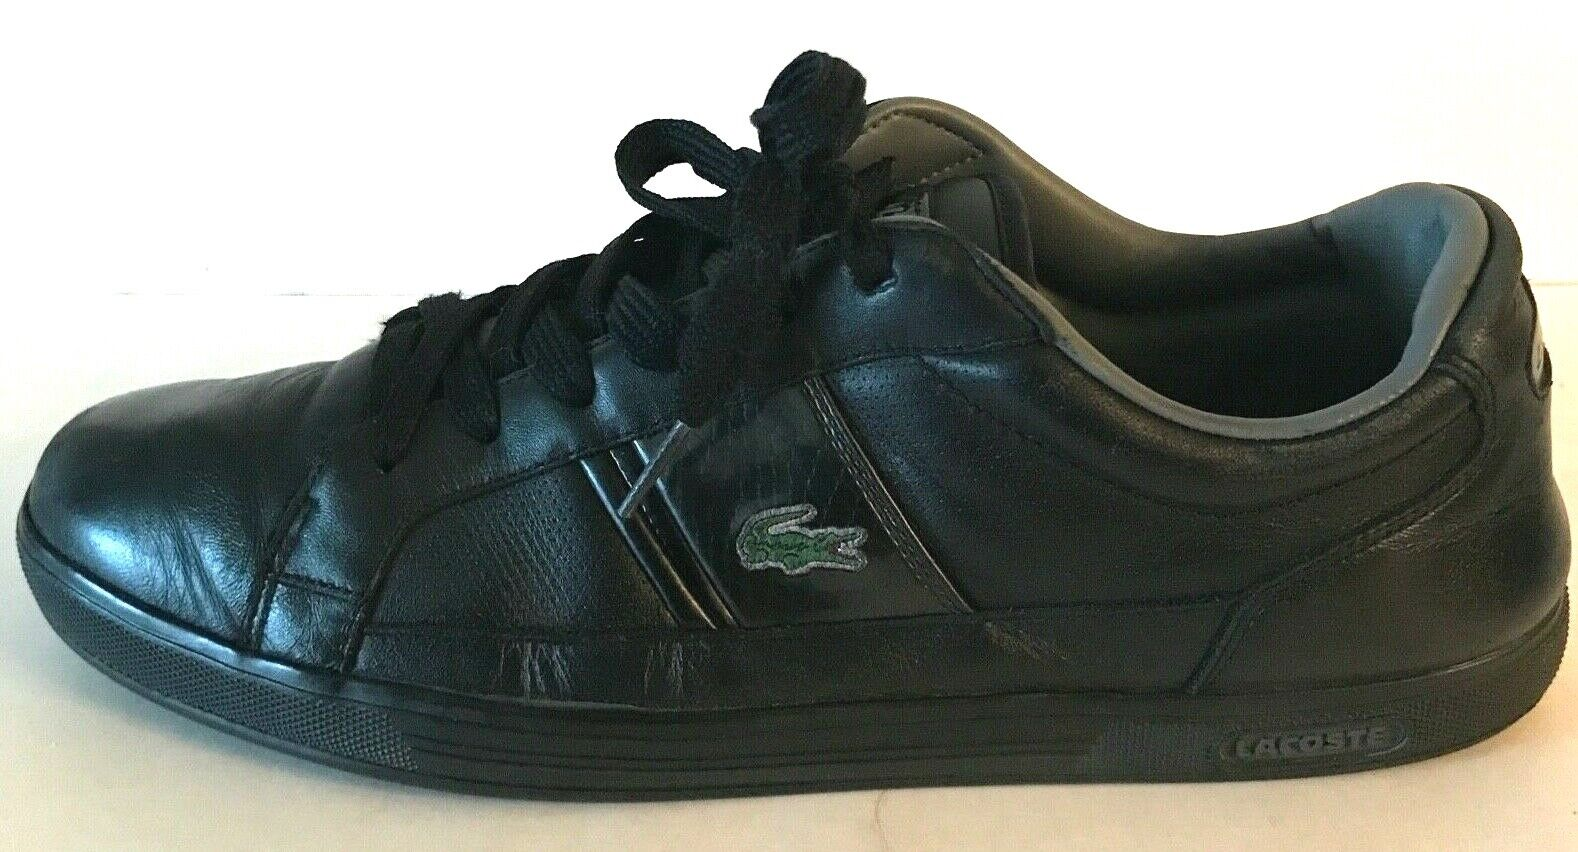 Lacoste Men's Black Leather Casual Sneakers Shoes Green Alligator #21233 US 11